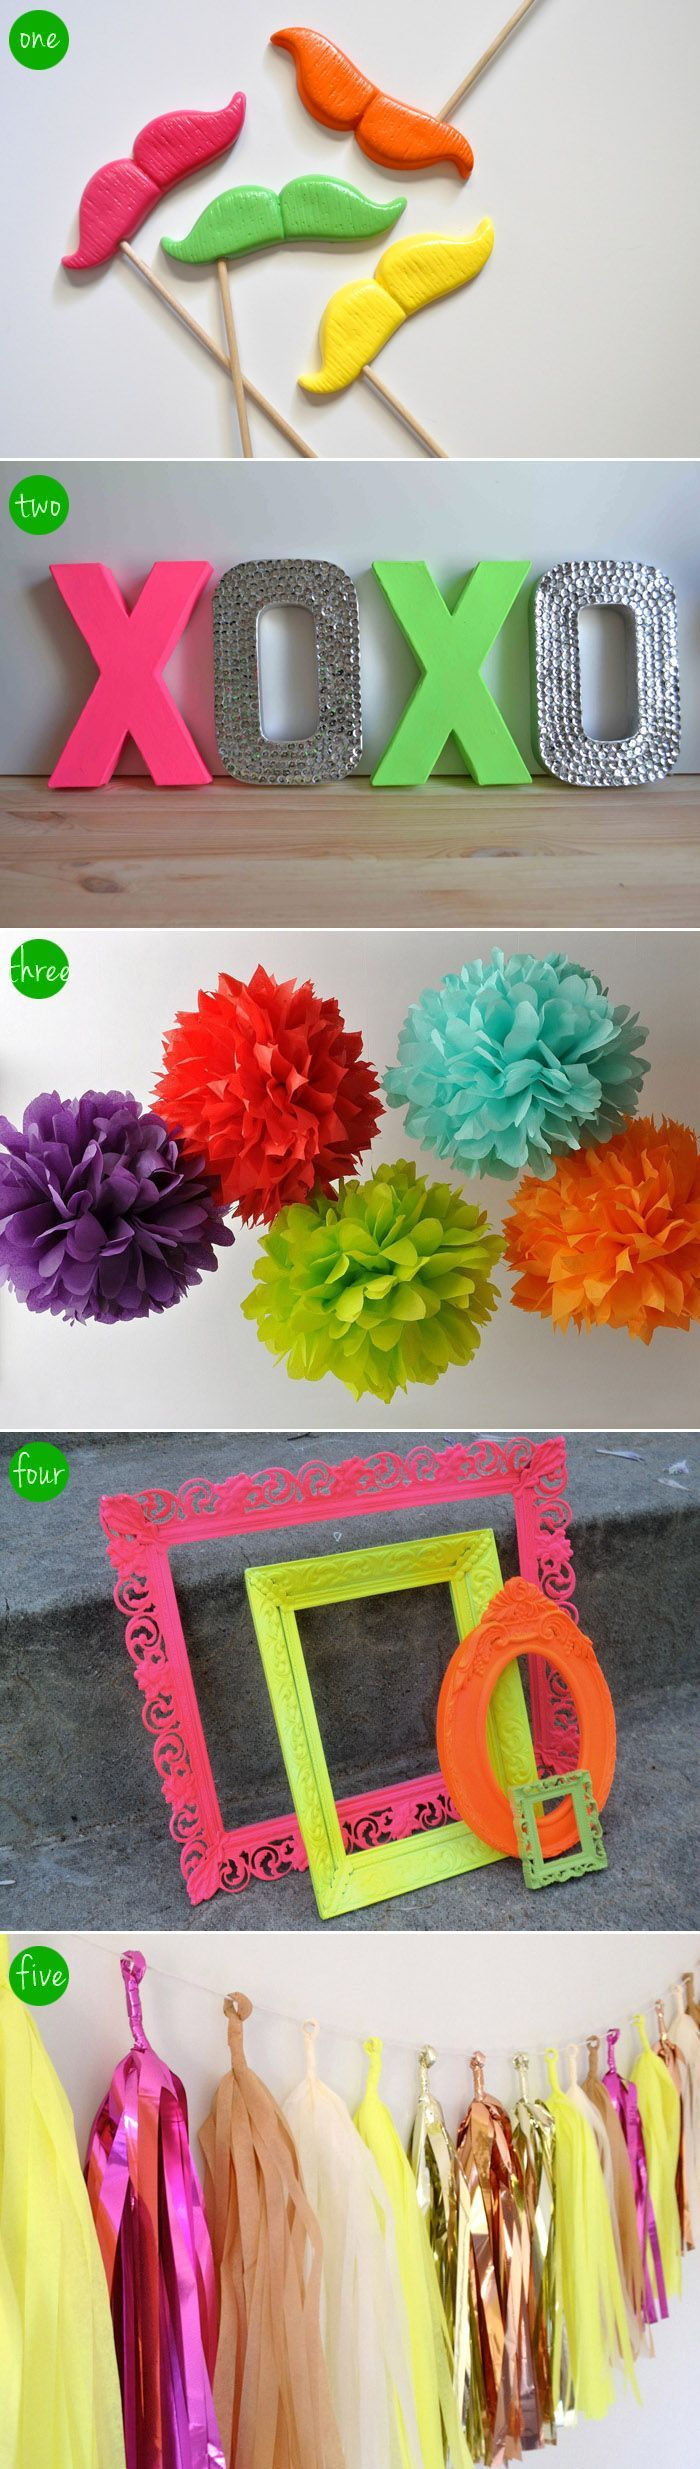 Neon photo booth inspiration (click on the link to 'Handmade Hilarity' and see the creative minds behind these crafty designs)